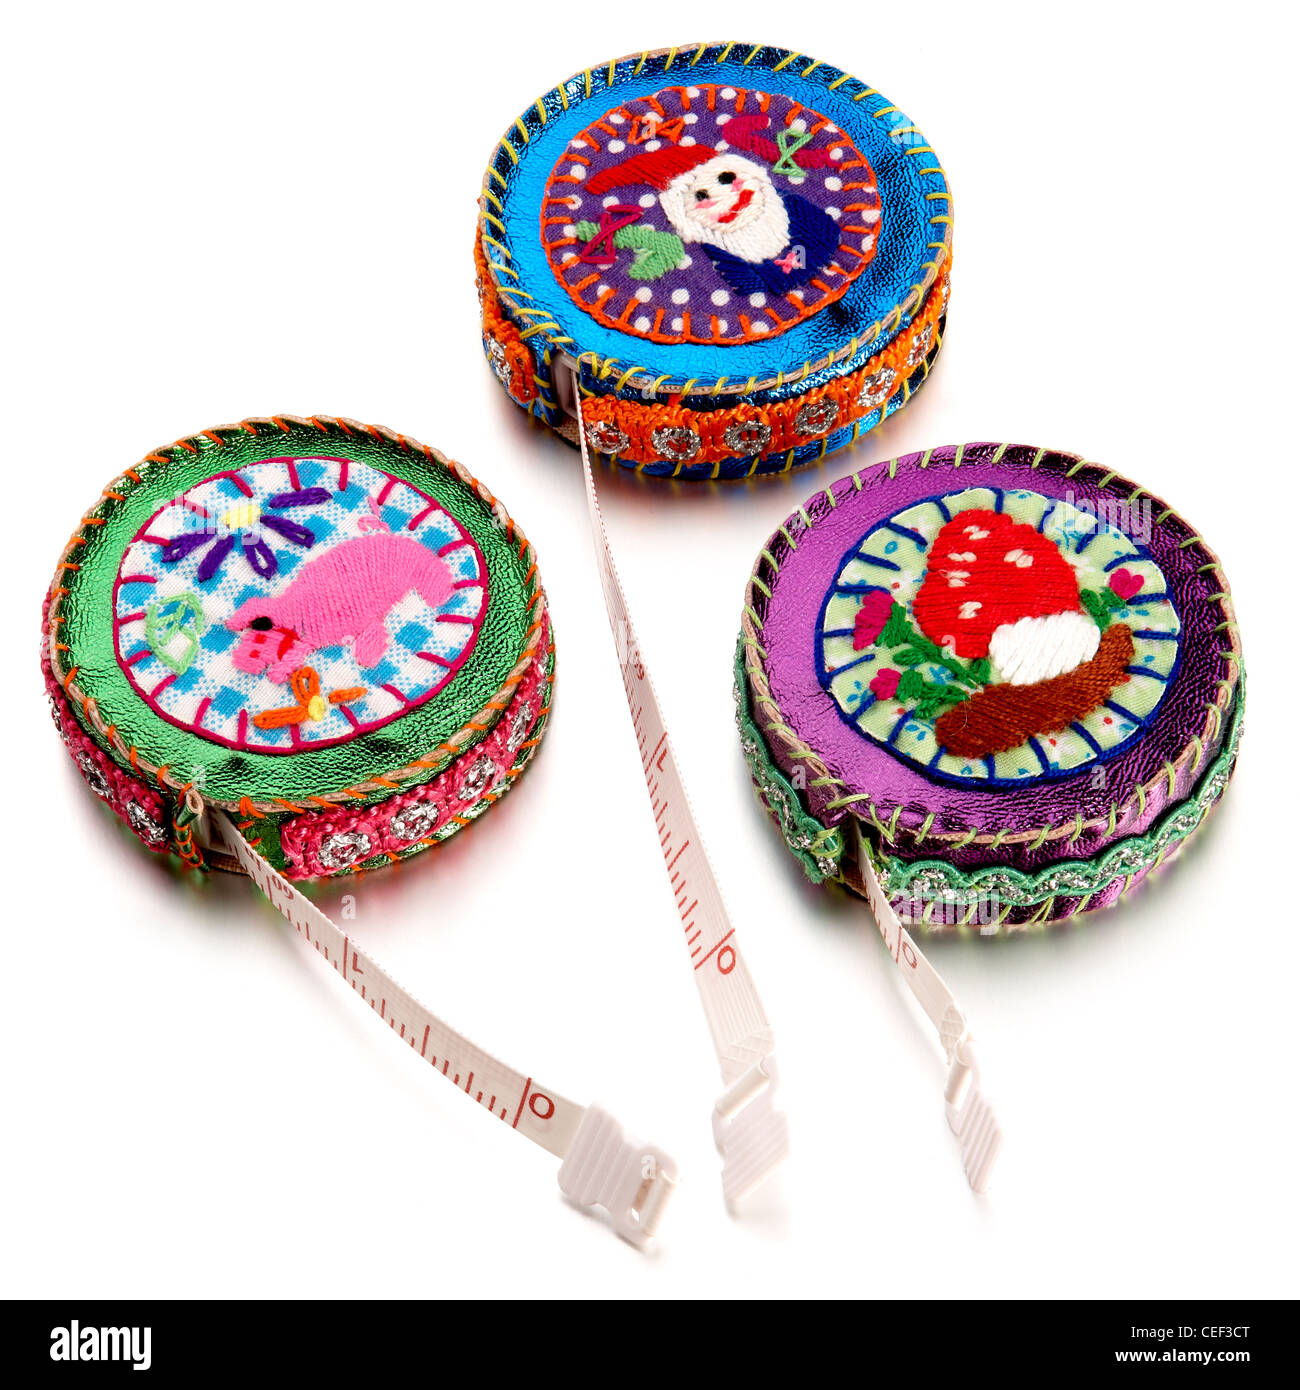 3 beaded measuring tapes - Stock Image